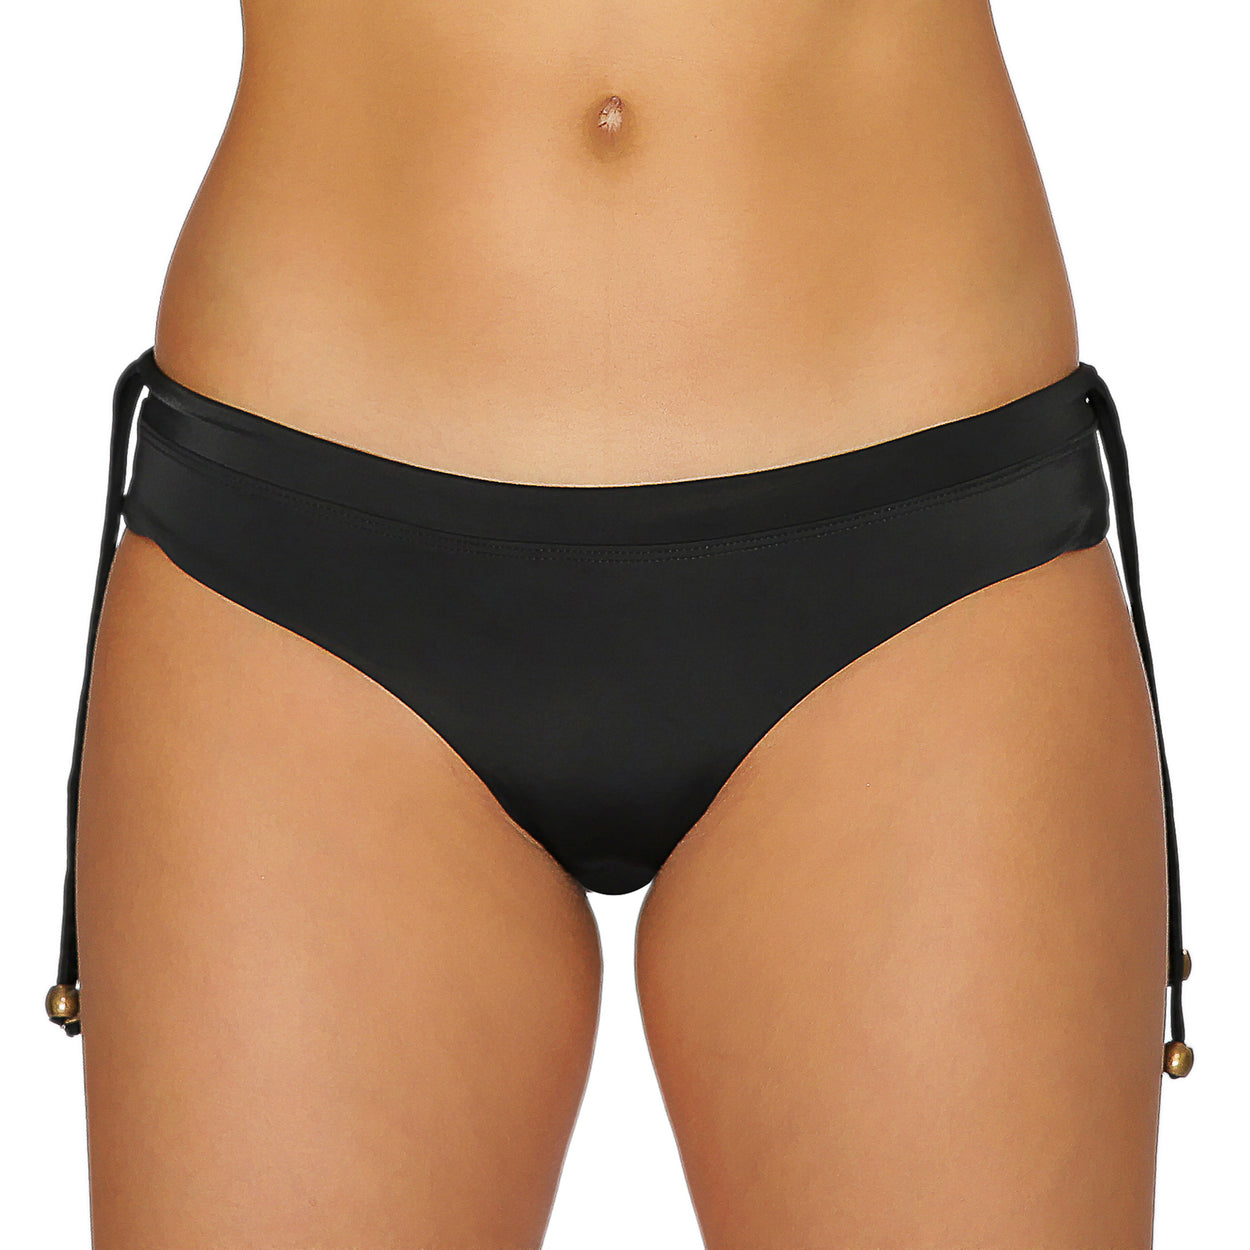 JAY BAY Surf Bottoms - Black